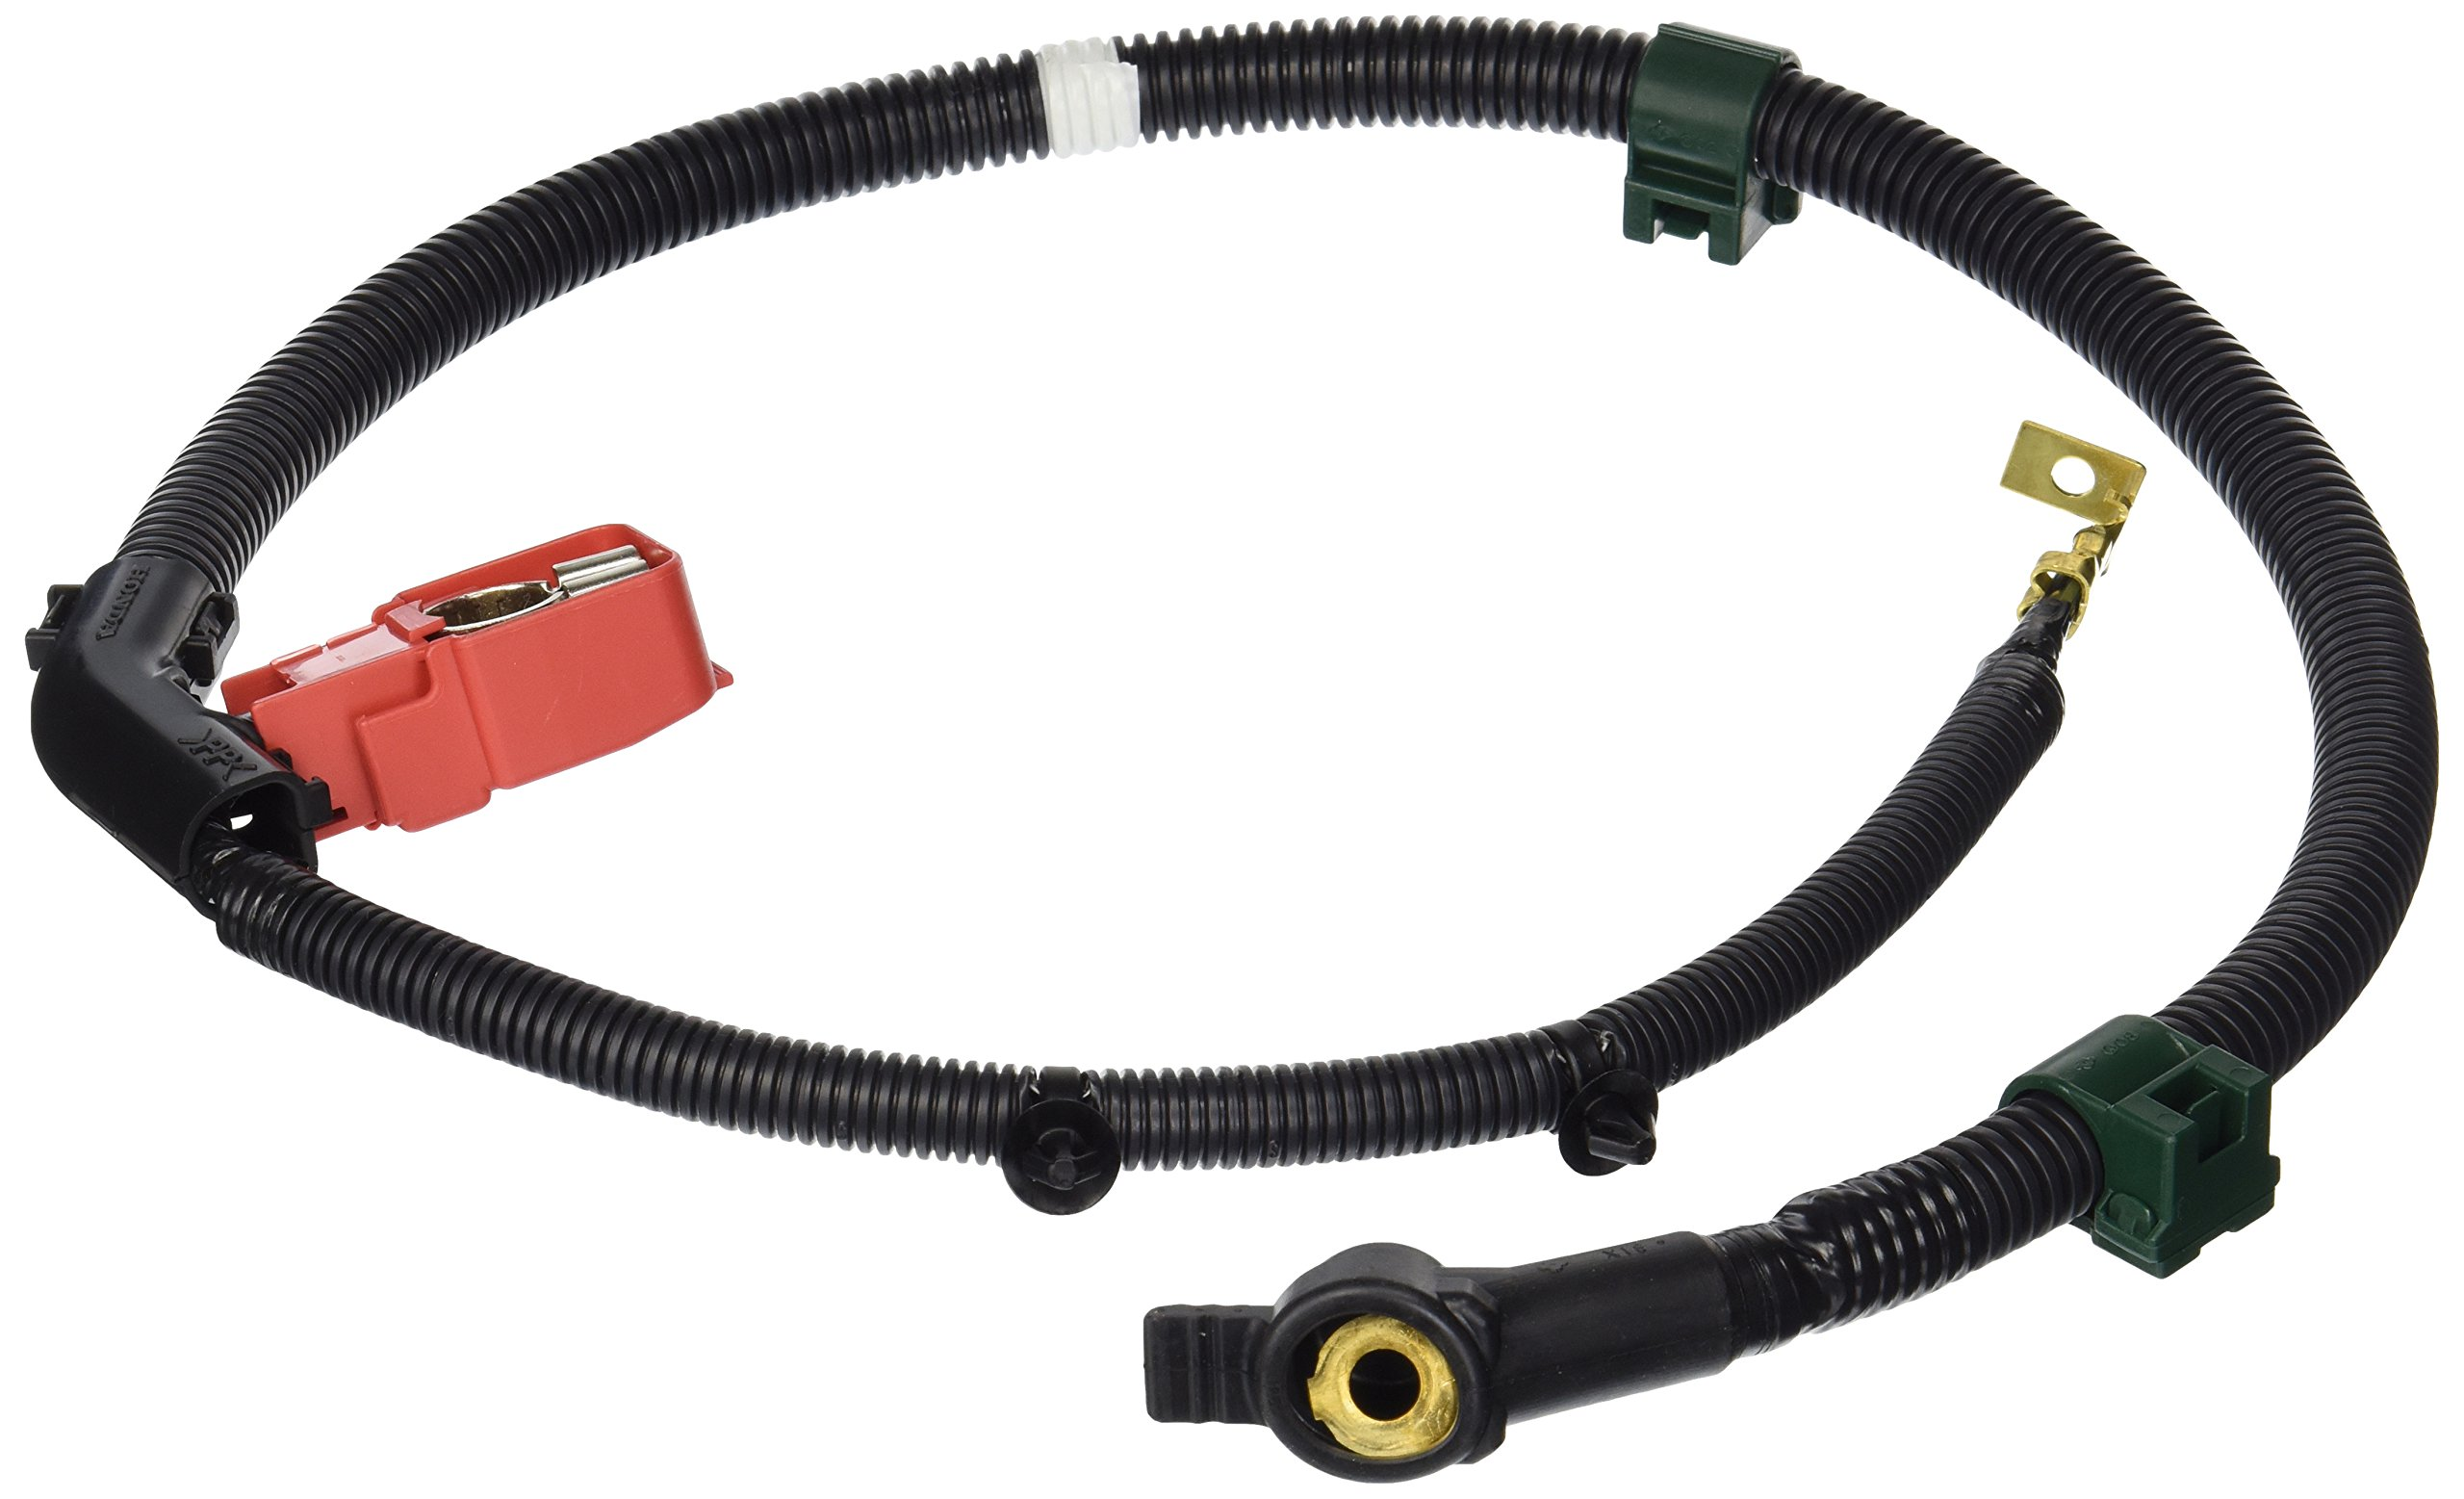 Genuine Honda 32410-SDB-A01 Automotive Accessories by Honda